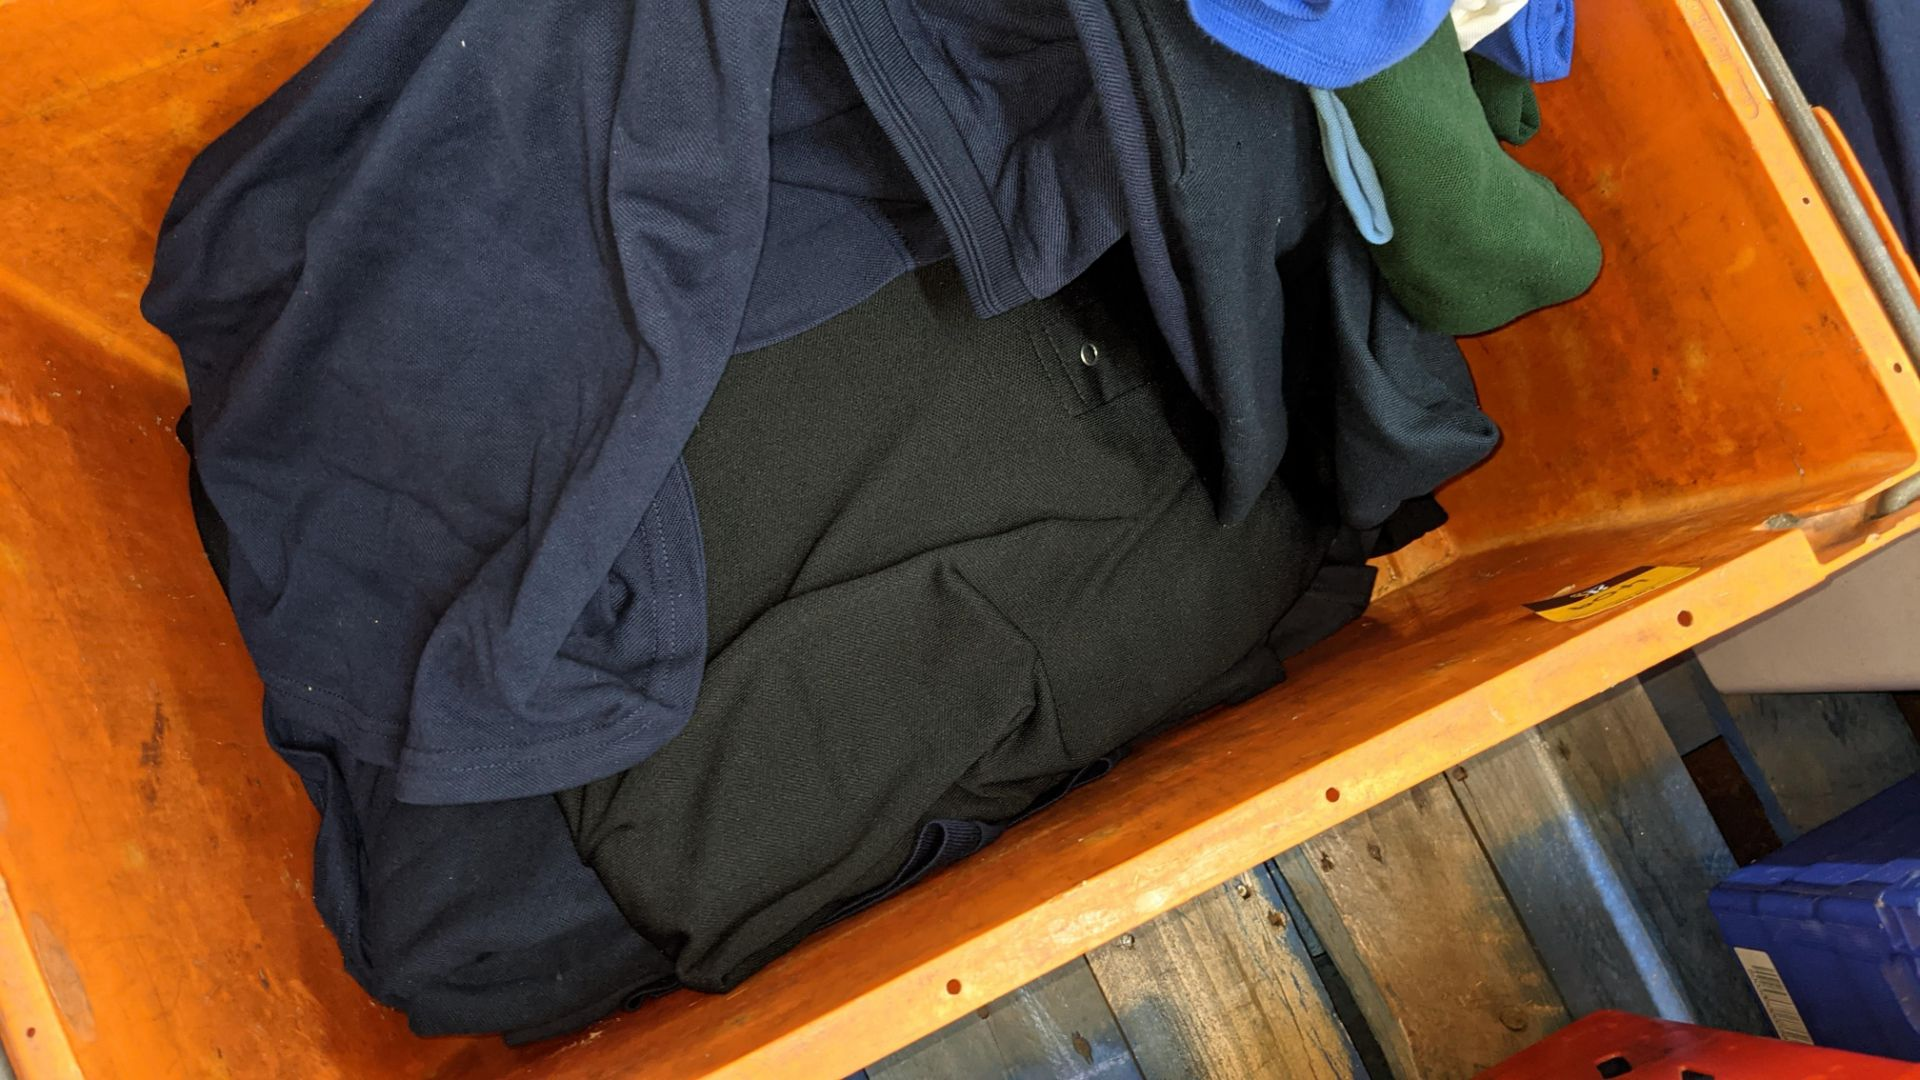 Quantity of assorted polo shirts & similar - the contents of 1 large crate - Image 4 of 5